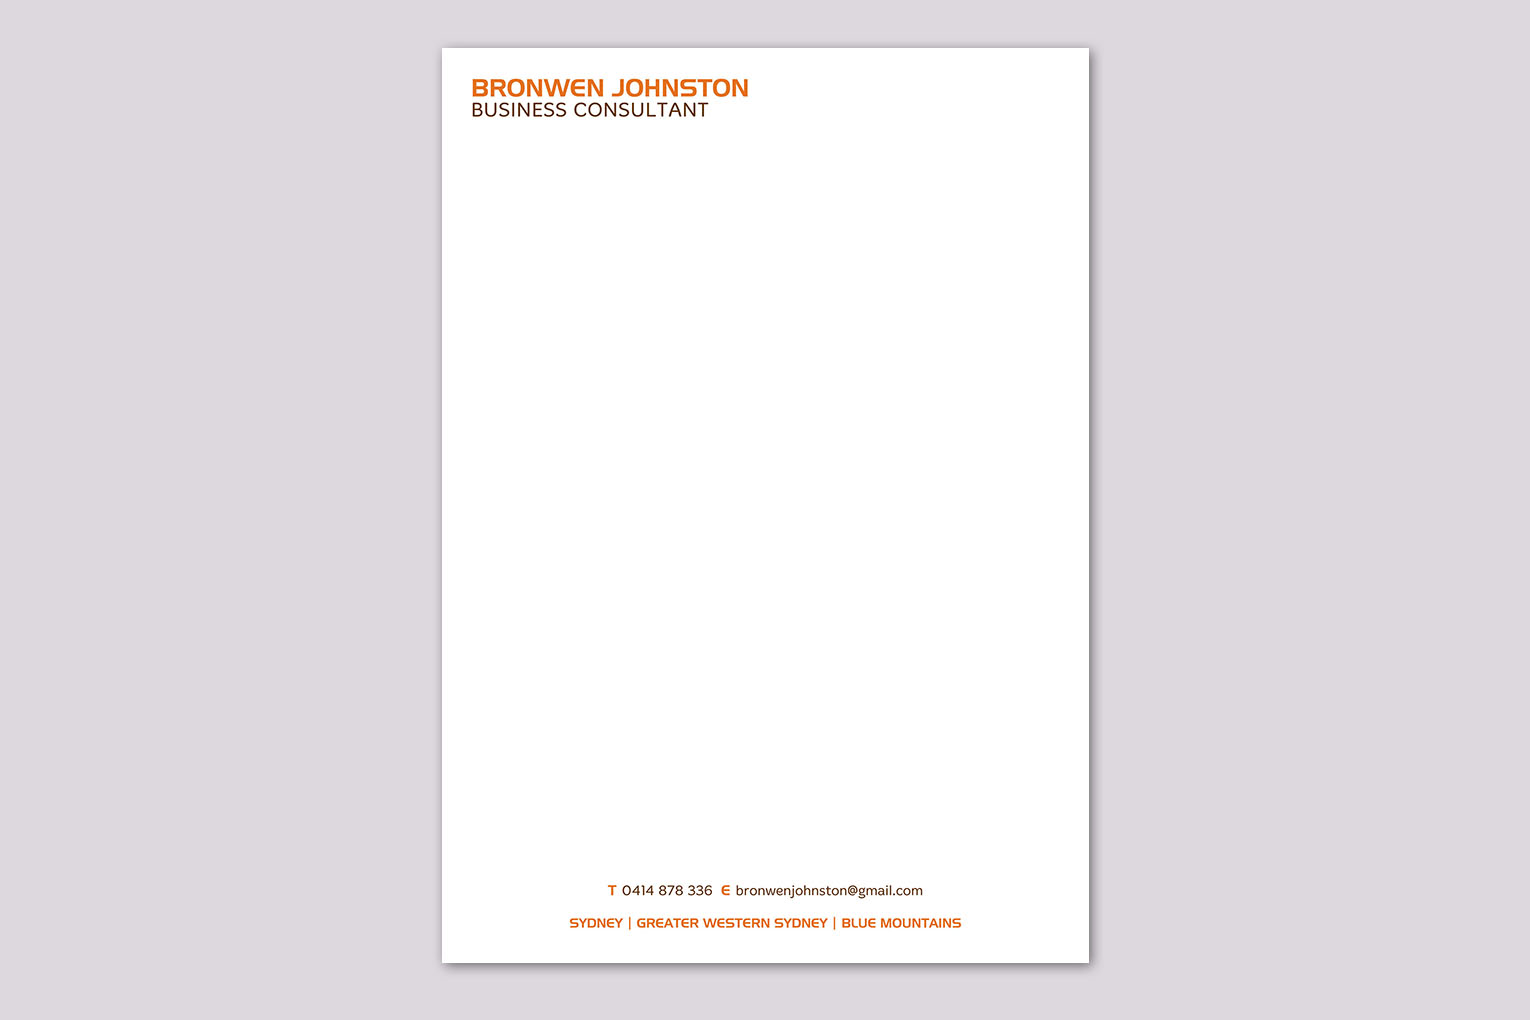 bronwen-johnston-corporate-identity-design-03